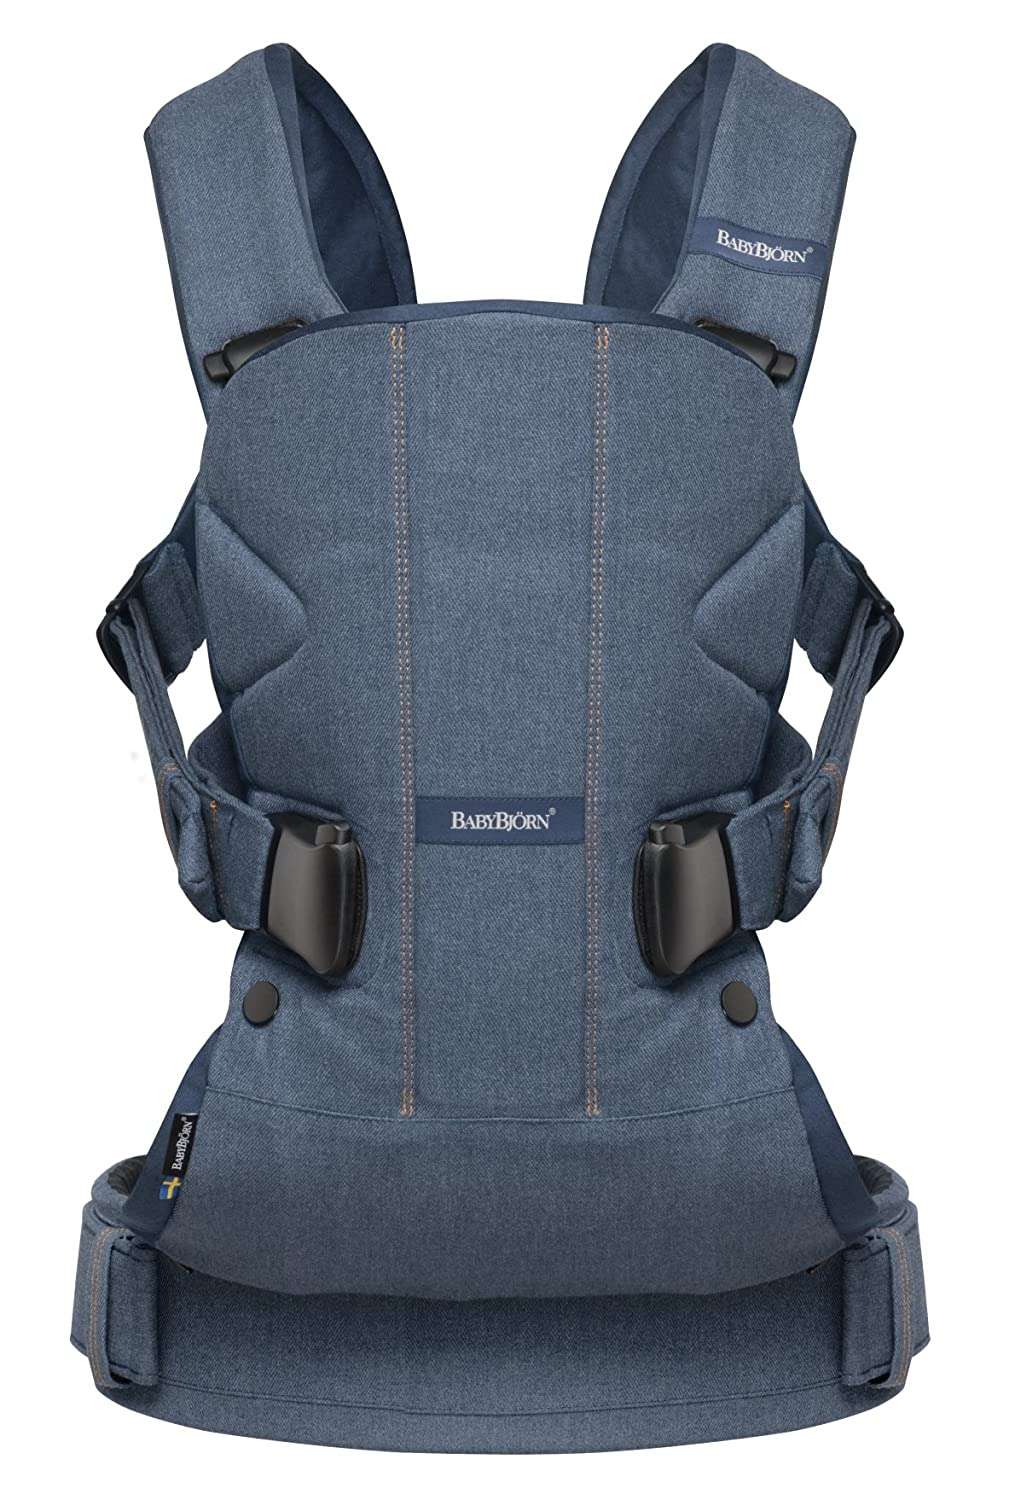 BABYBJORN Baby Carrier One - Denim Gray, Cotton 093094US